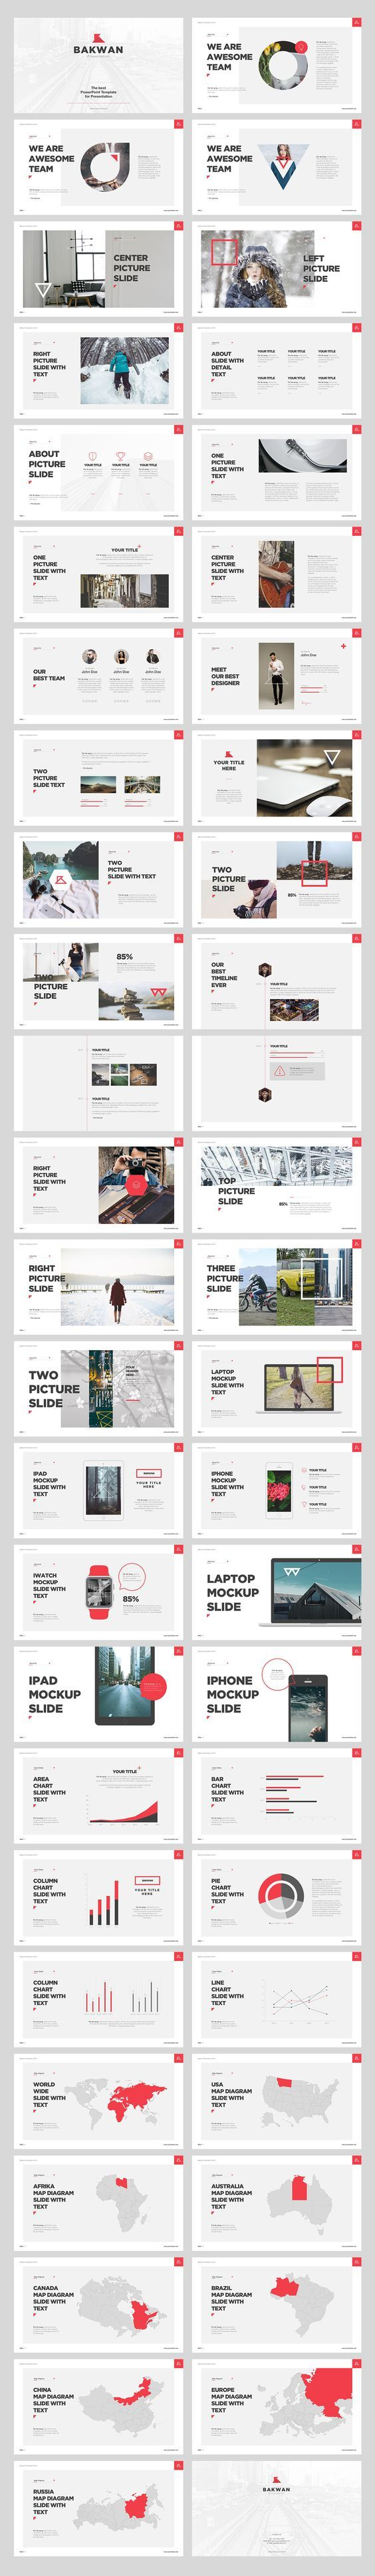 This is! An unique presentation template for commercial enterprise or personal use, one of creative industry, business, technology and many more.